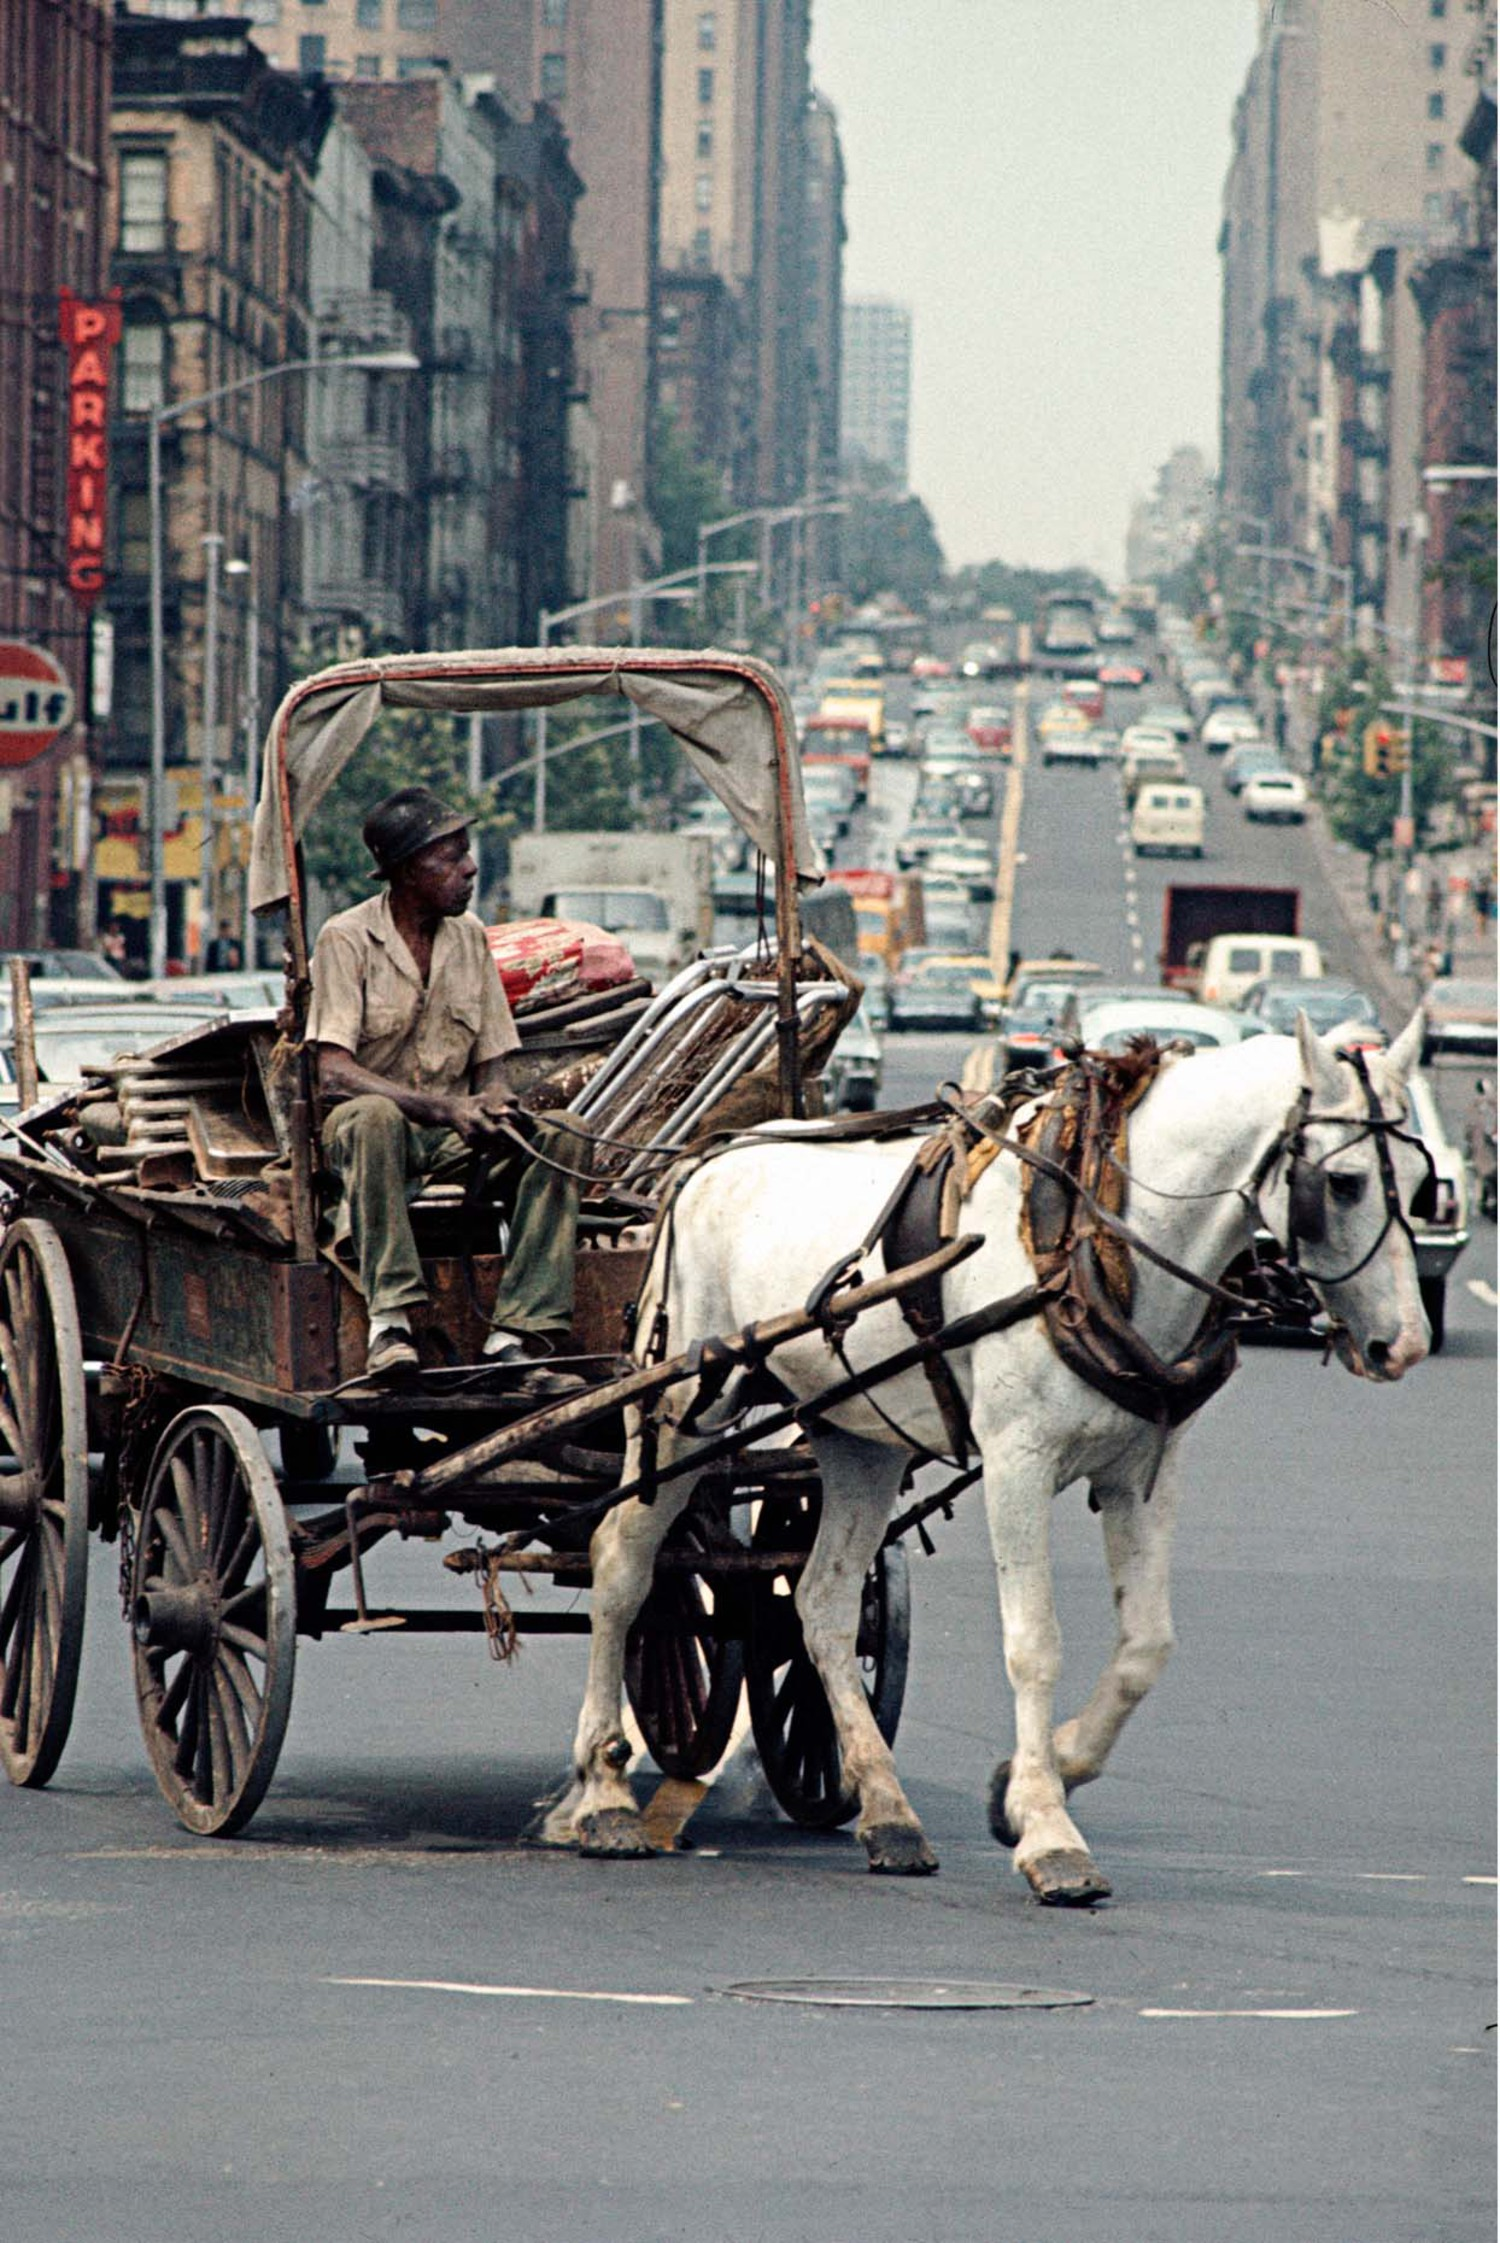 Scrap metal collector on the Way to Harlem, 1970